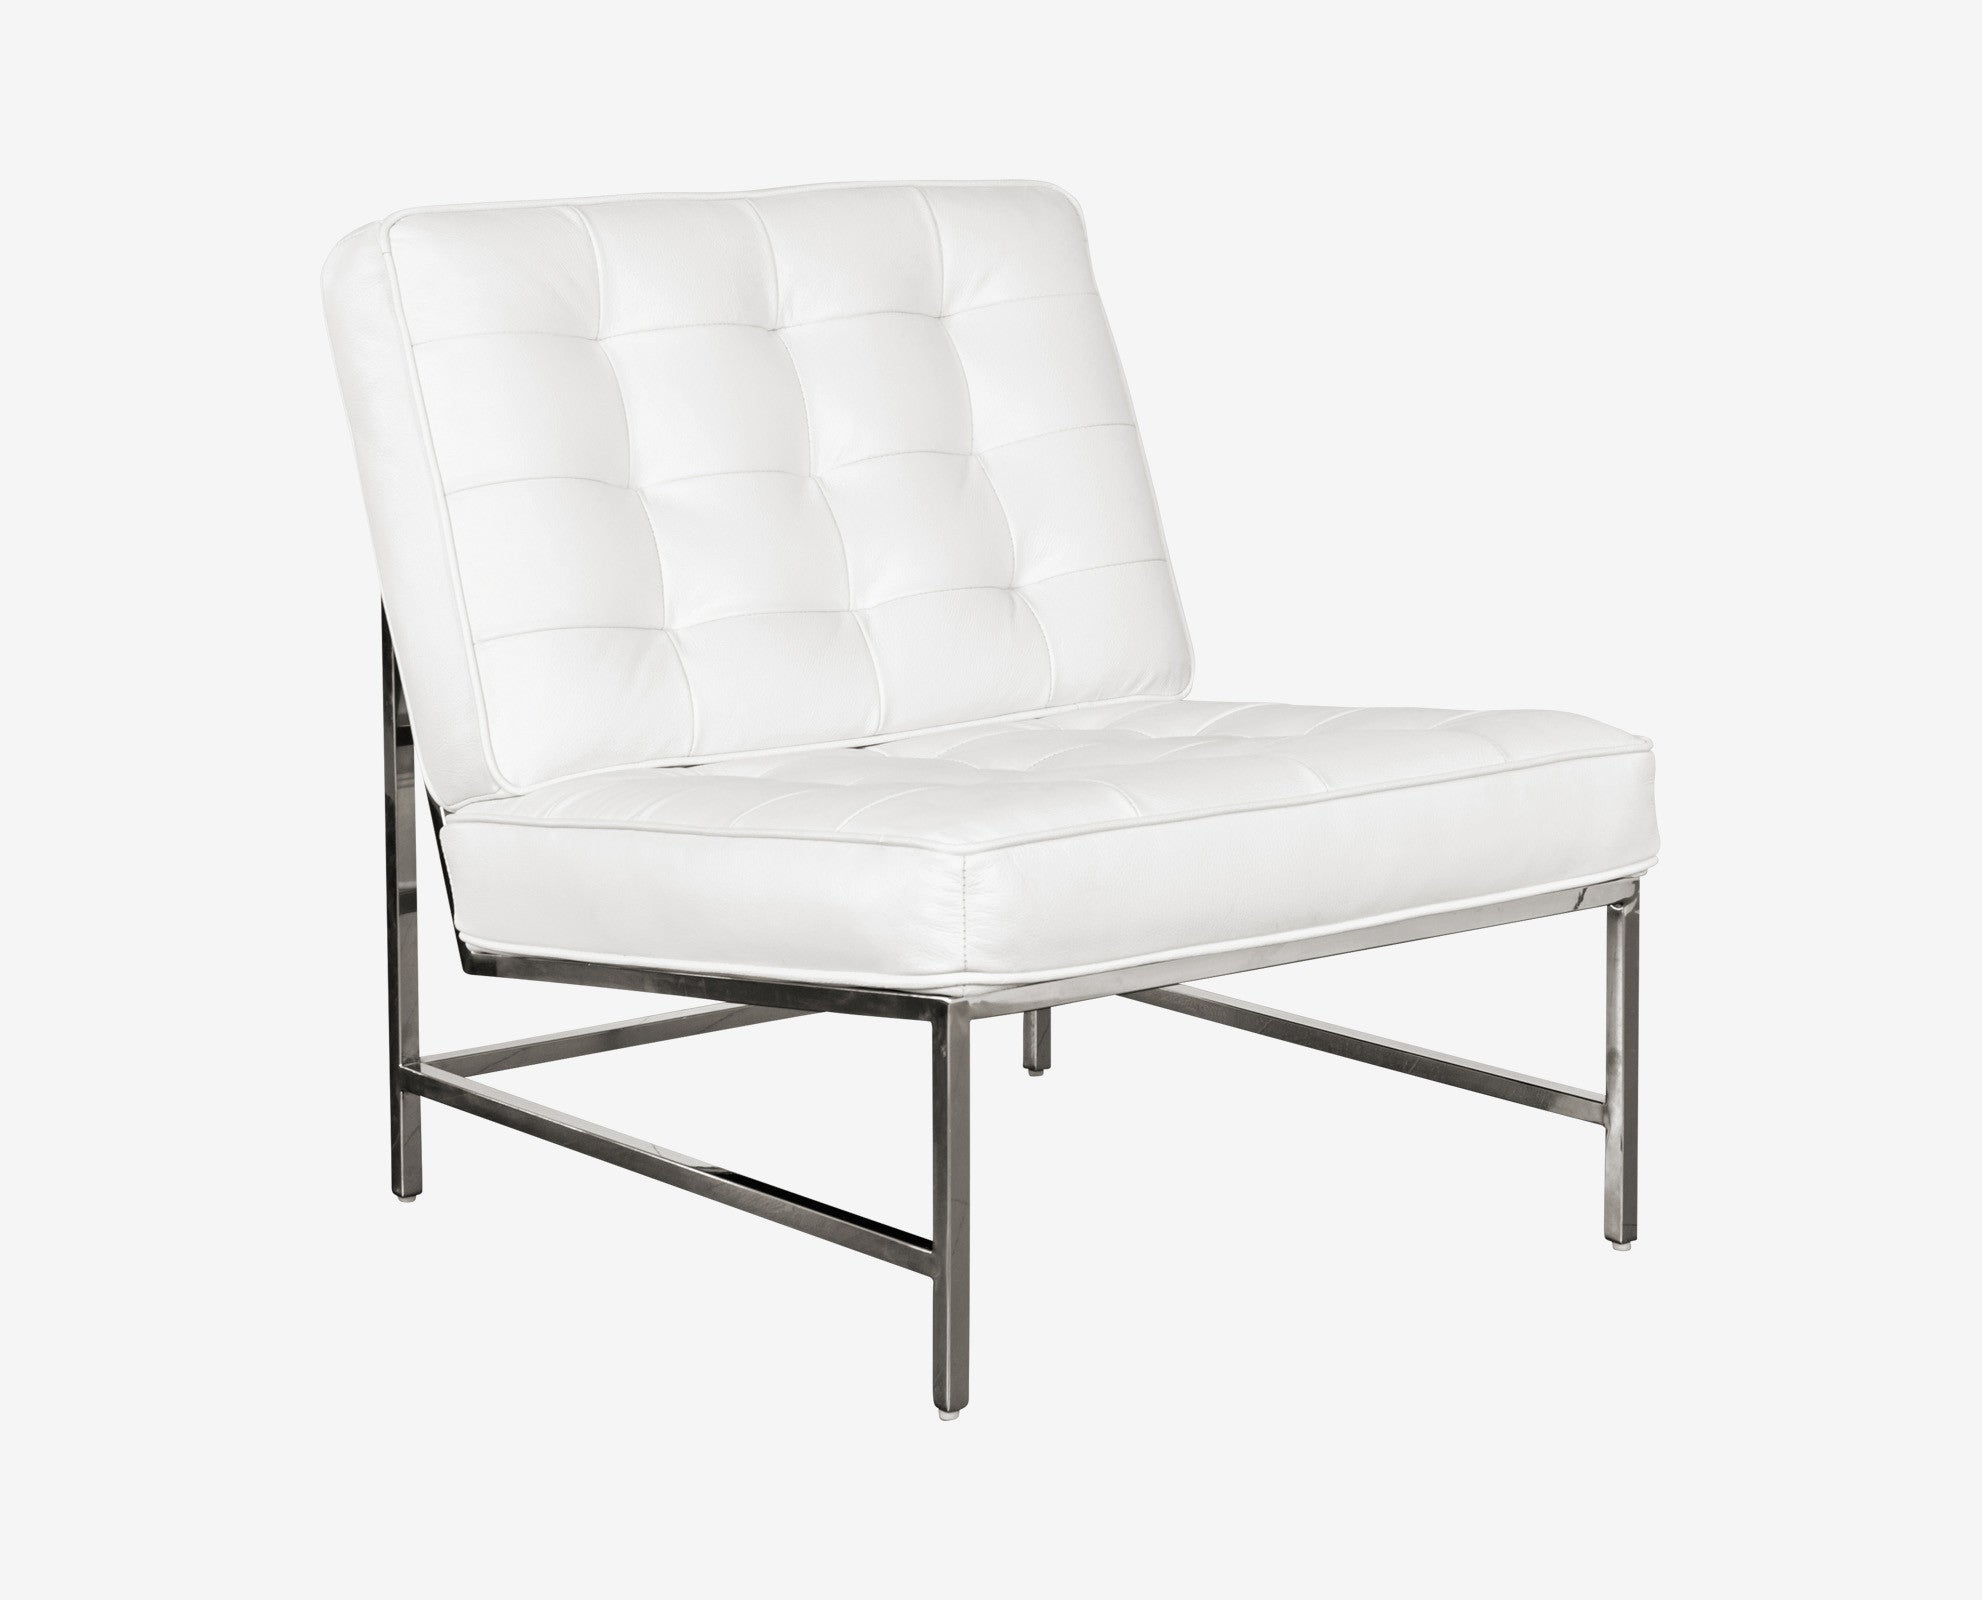 Barica Leather Chair White – DaniaFurniture